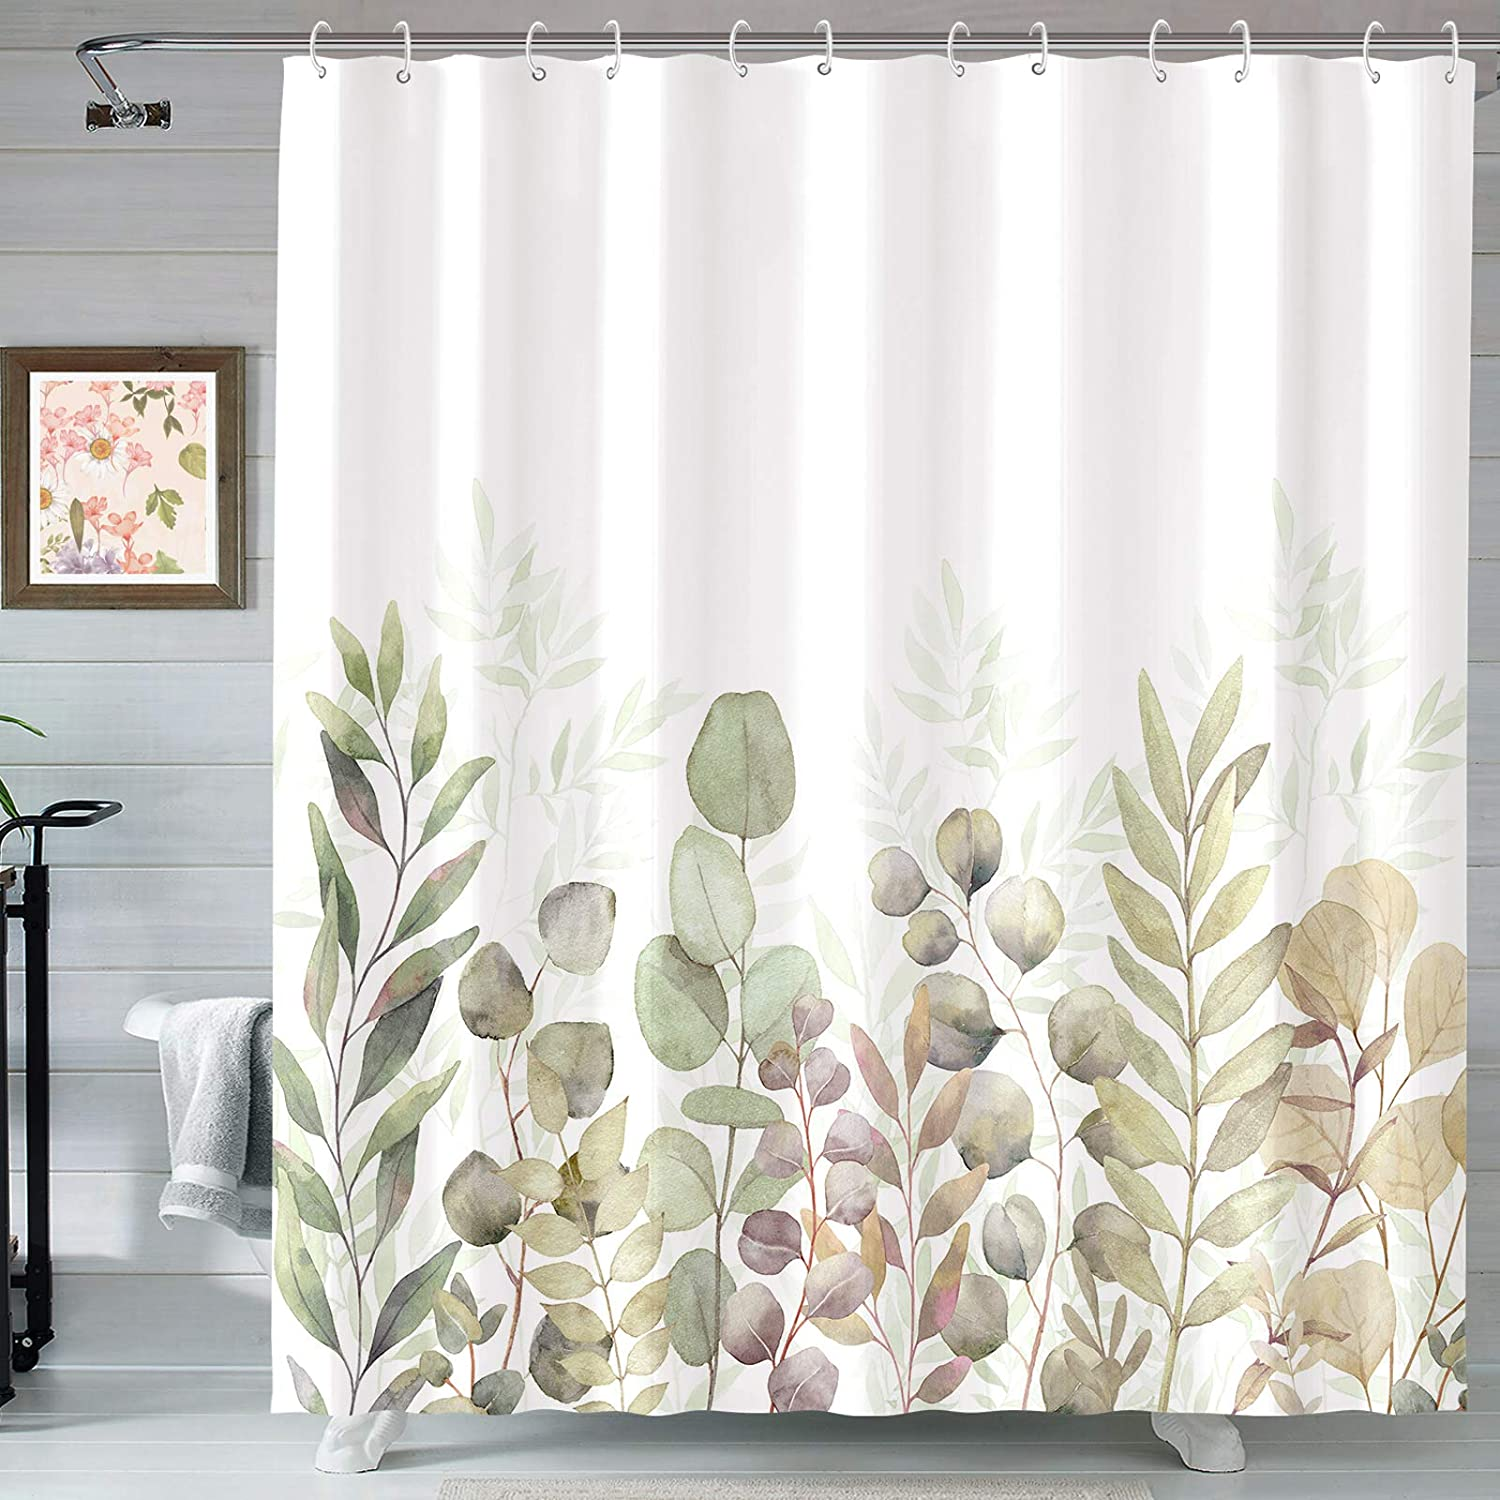 Houston Mall AMM Max 50% OFF Green and White Shower B Fabric Curtains Curtain for